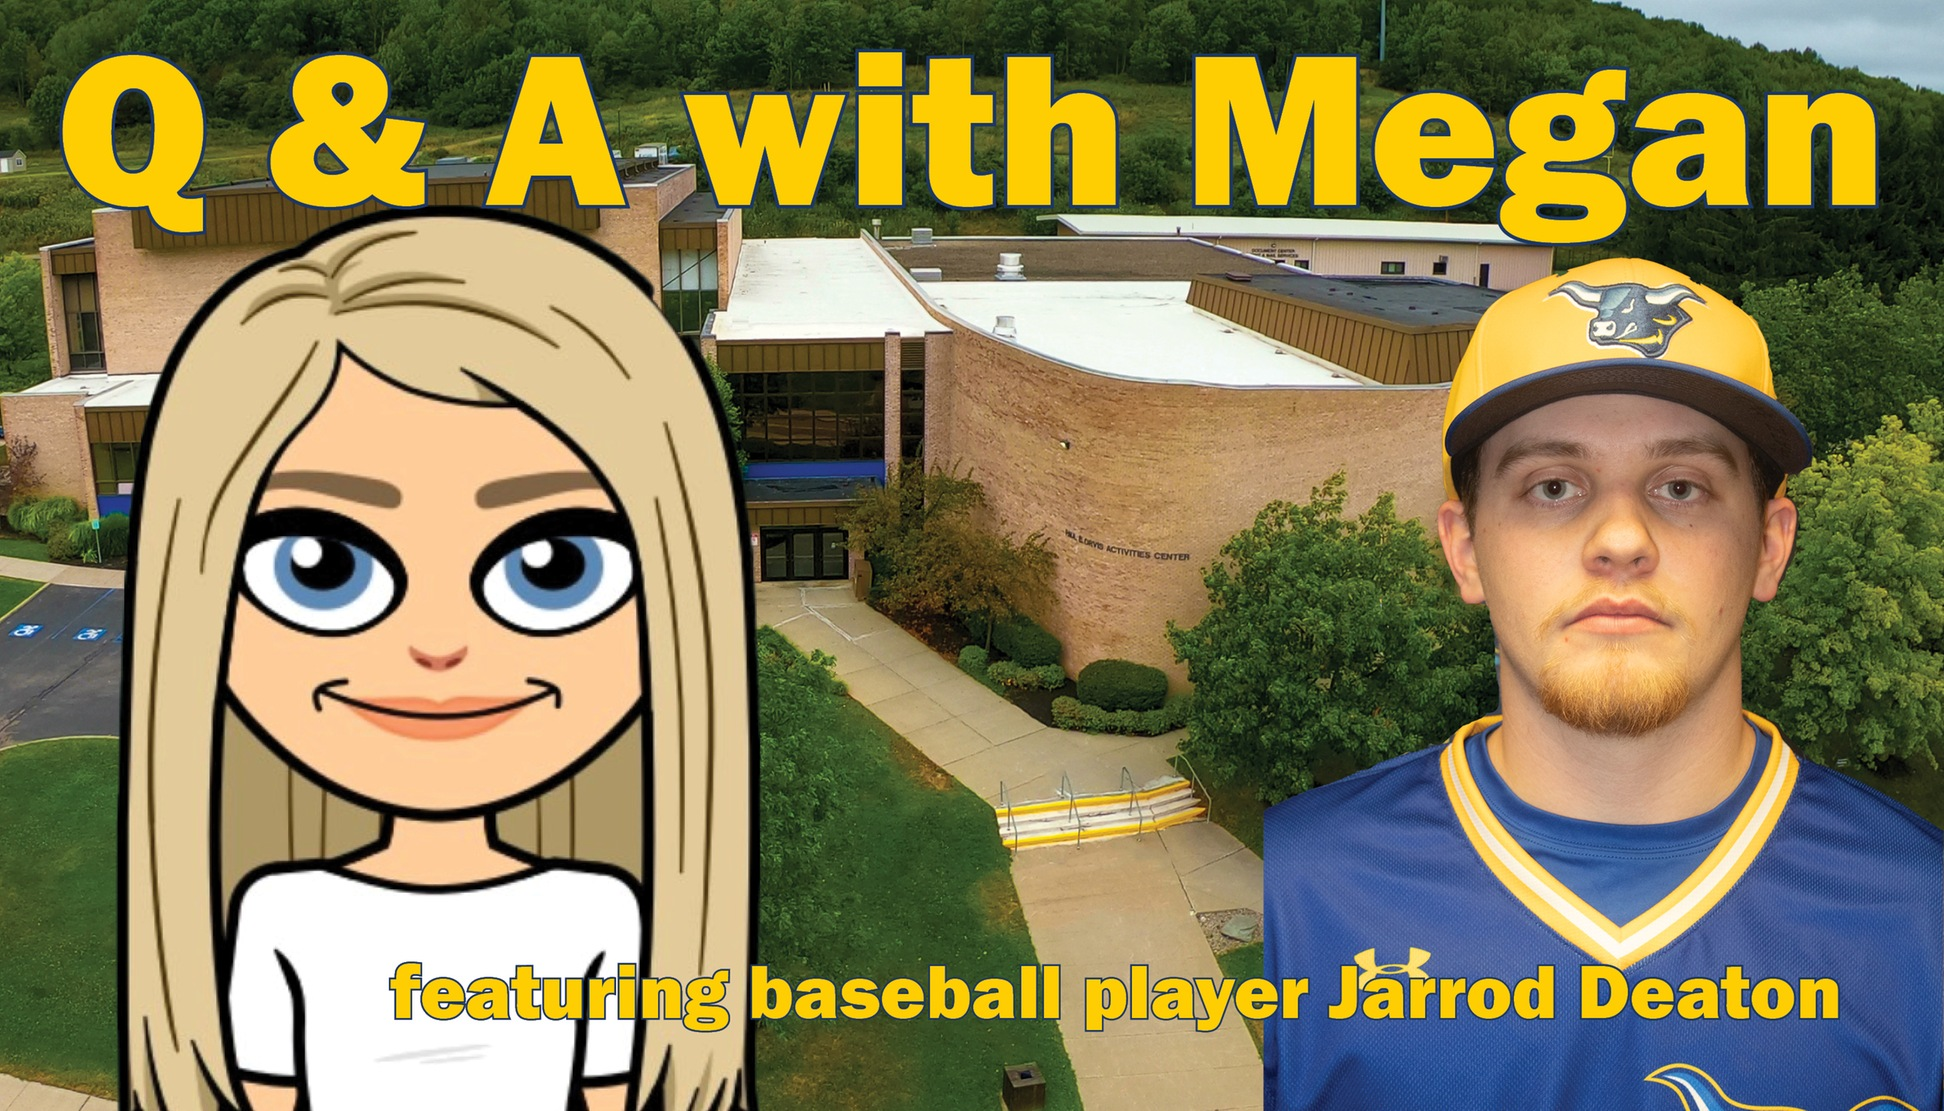 Q & A with Megan featuring Jarrod Deaton